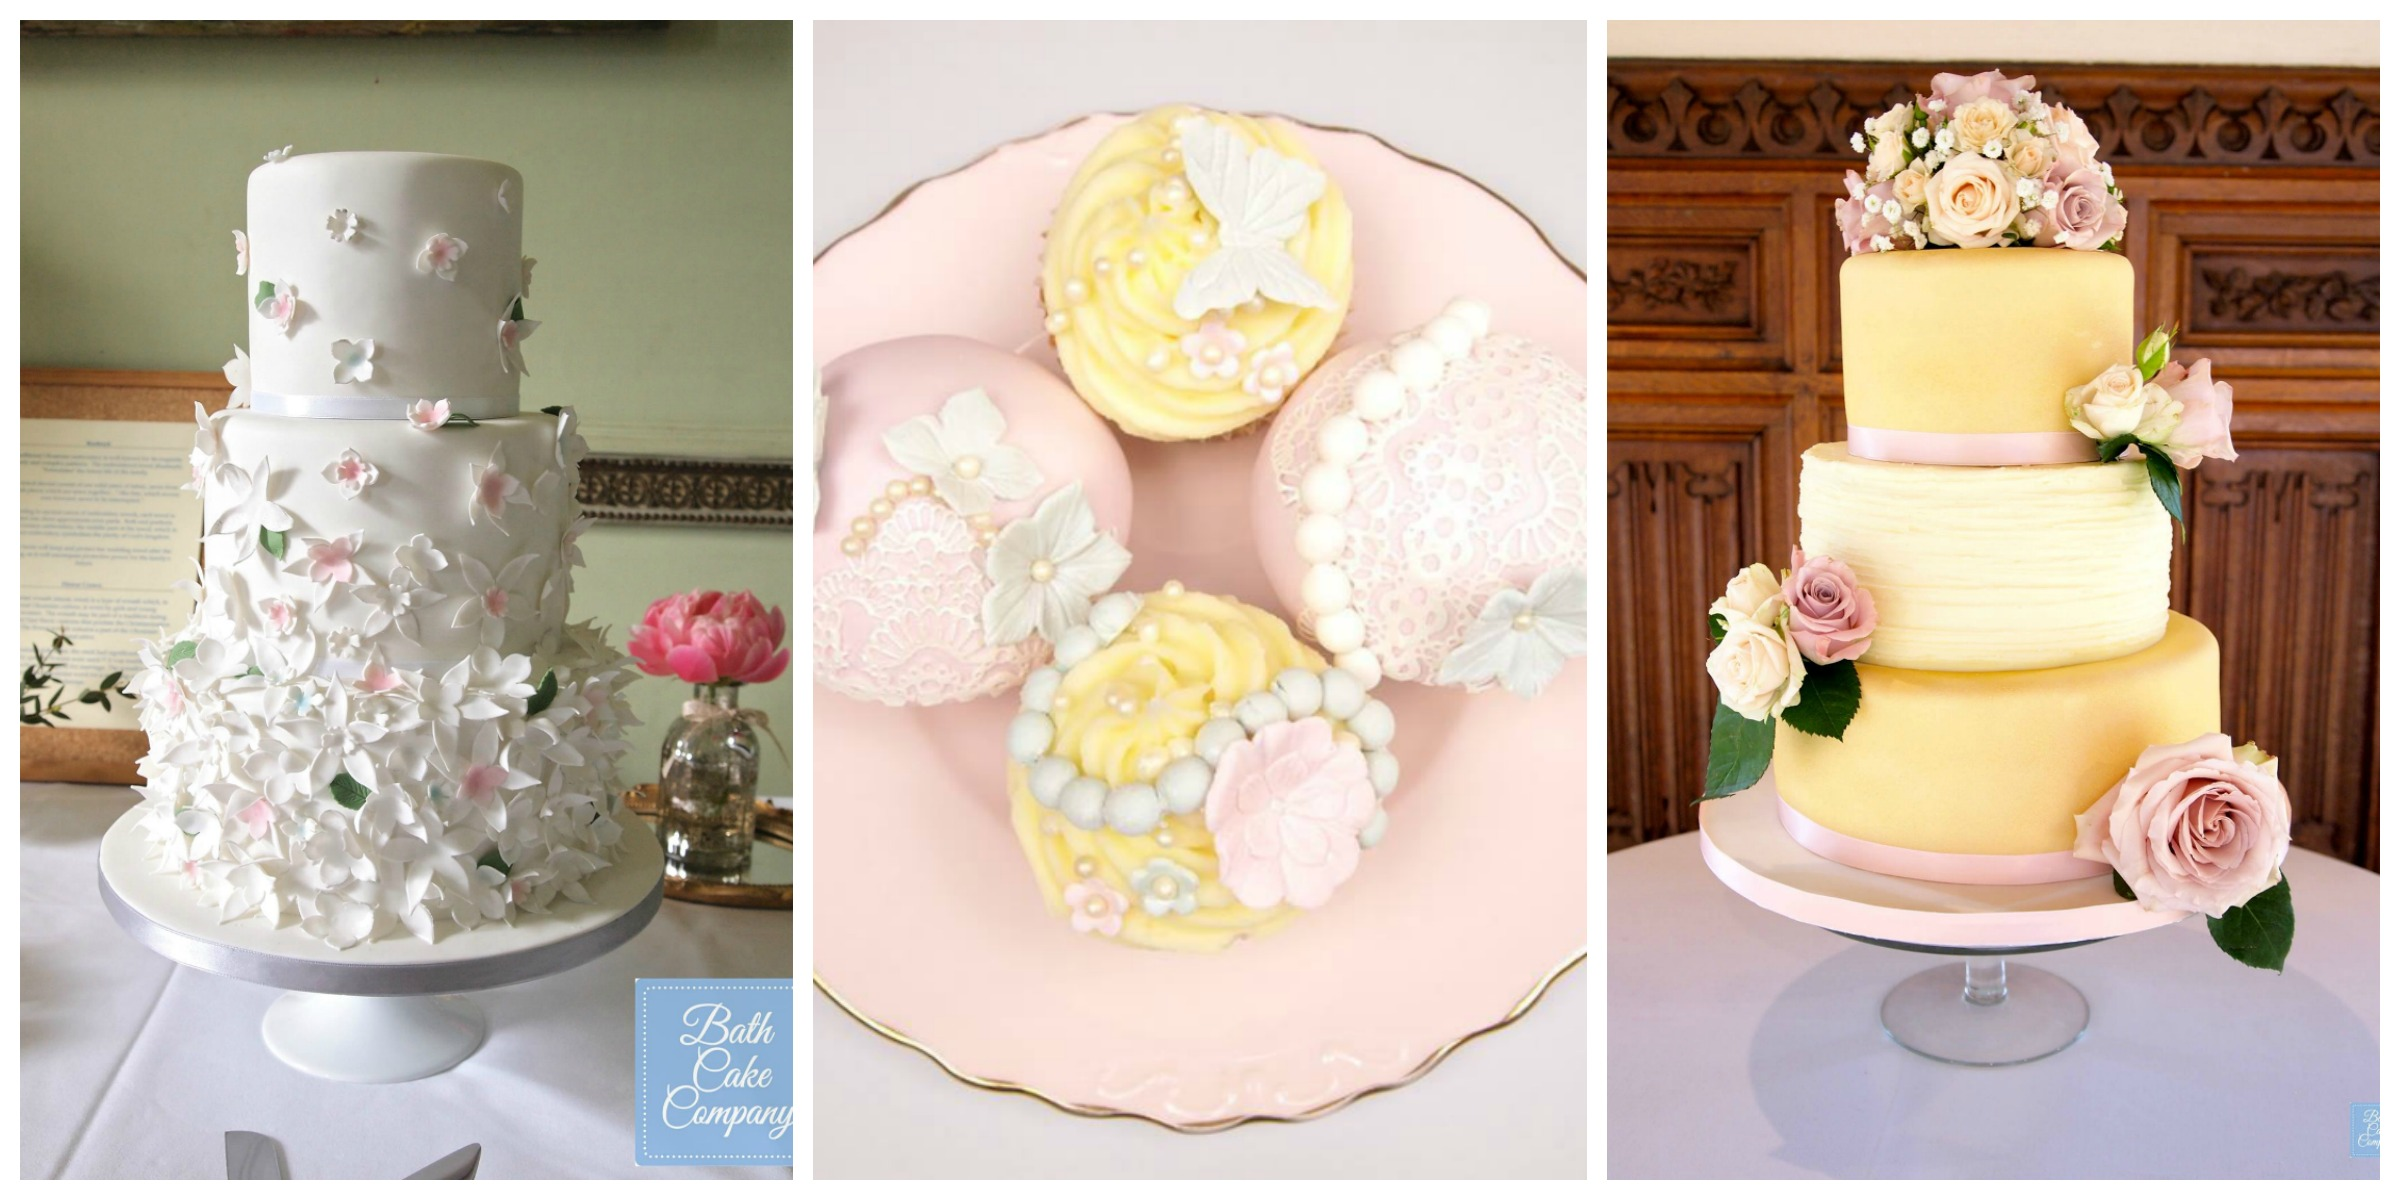 Cake Making Classes Bath : Stunning wedding cakes by the Bath Cake Company ...